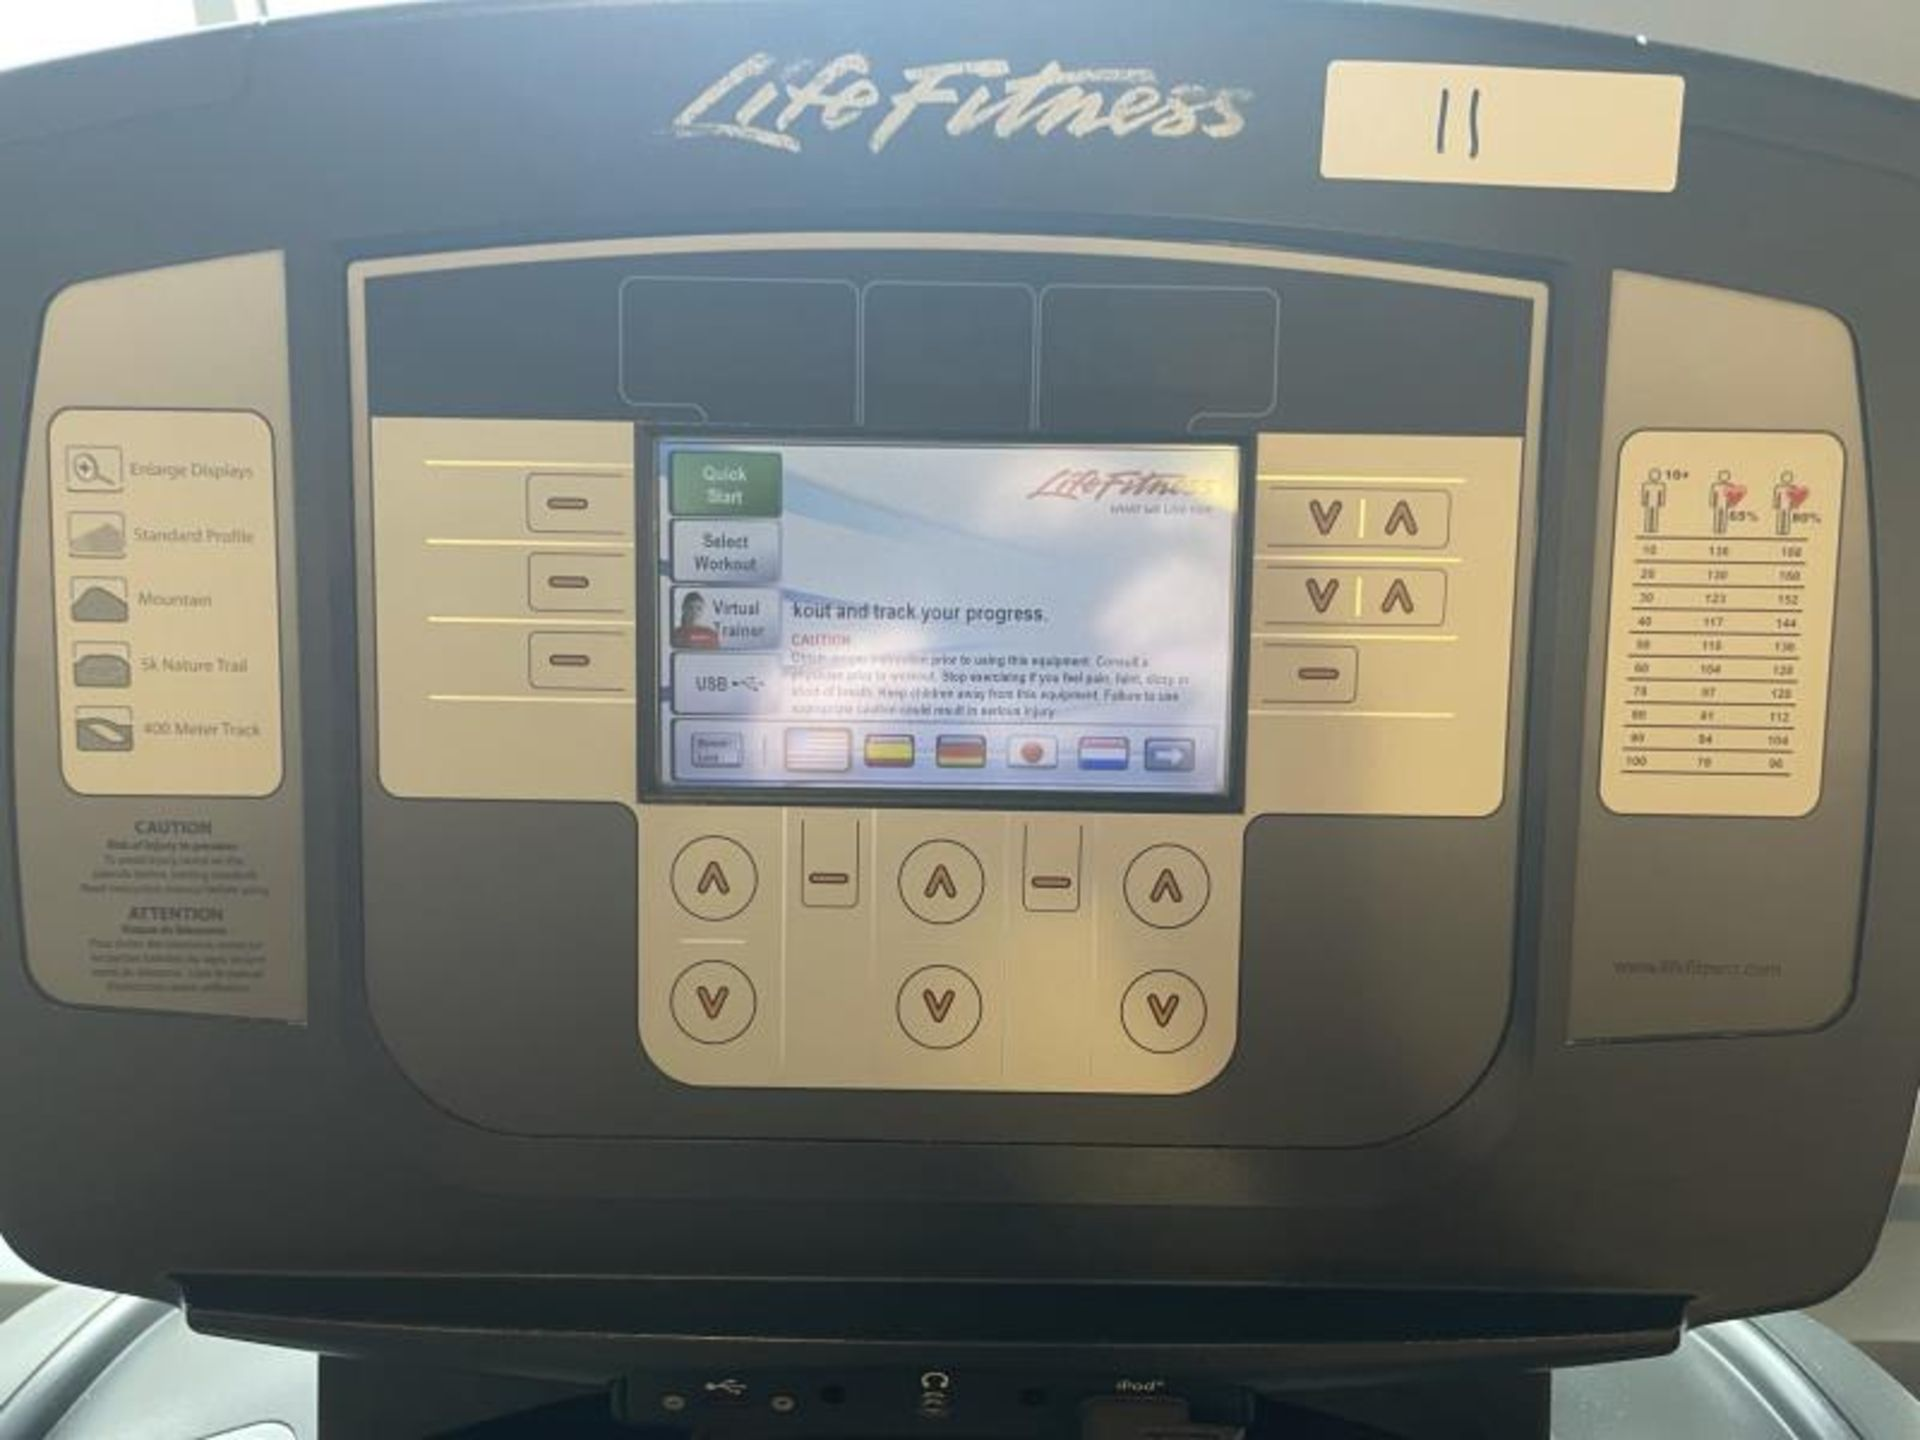 Life Fitness Treadmill M: 95T with Flex Deck, Shock Absorption System SN: TET107097 - Image 2 of 2